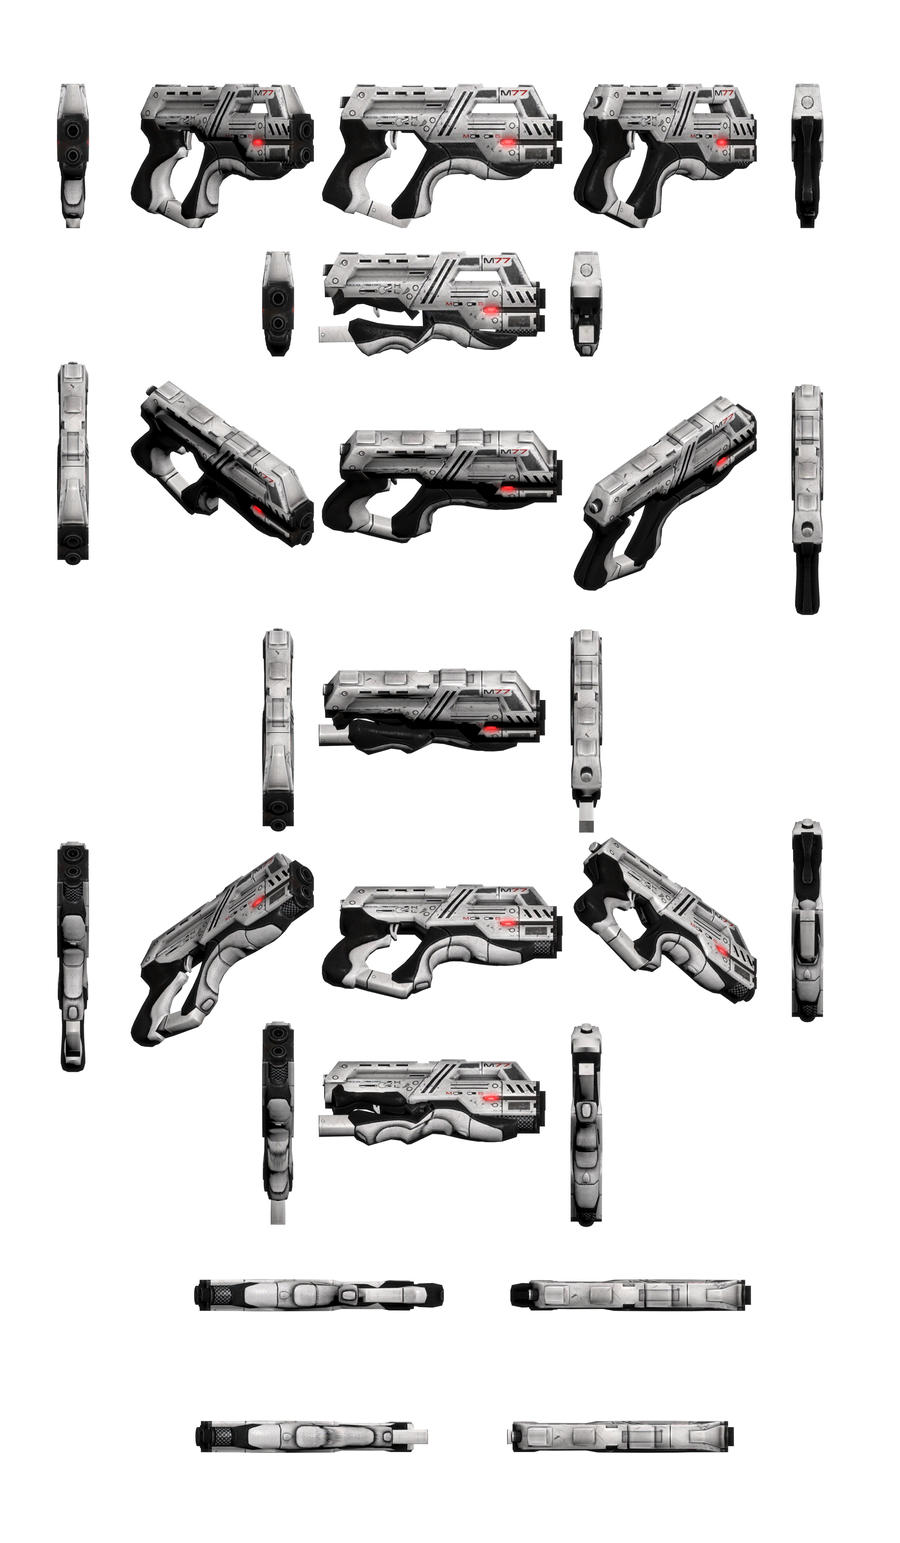 Mass Effect 3, M-77 Paladin Heavy Pistol Reference by Troodon80